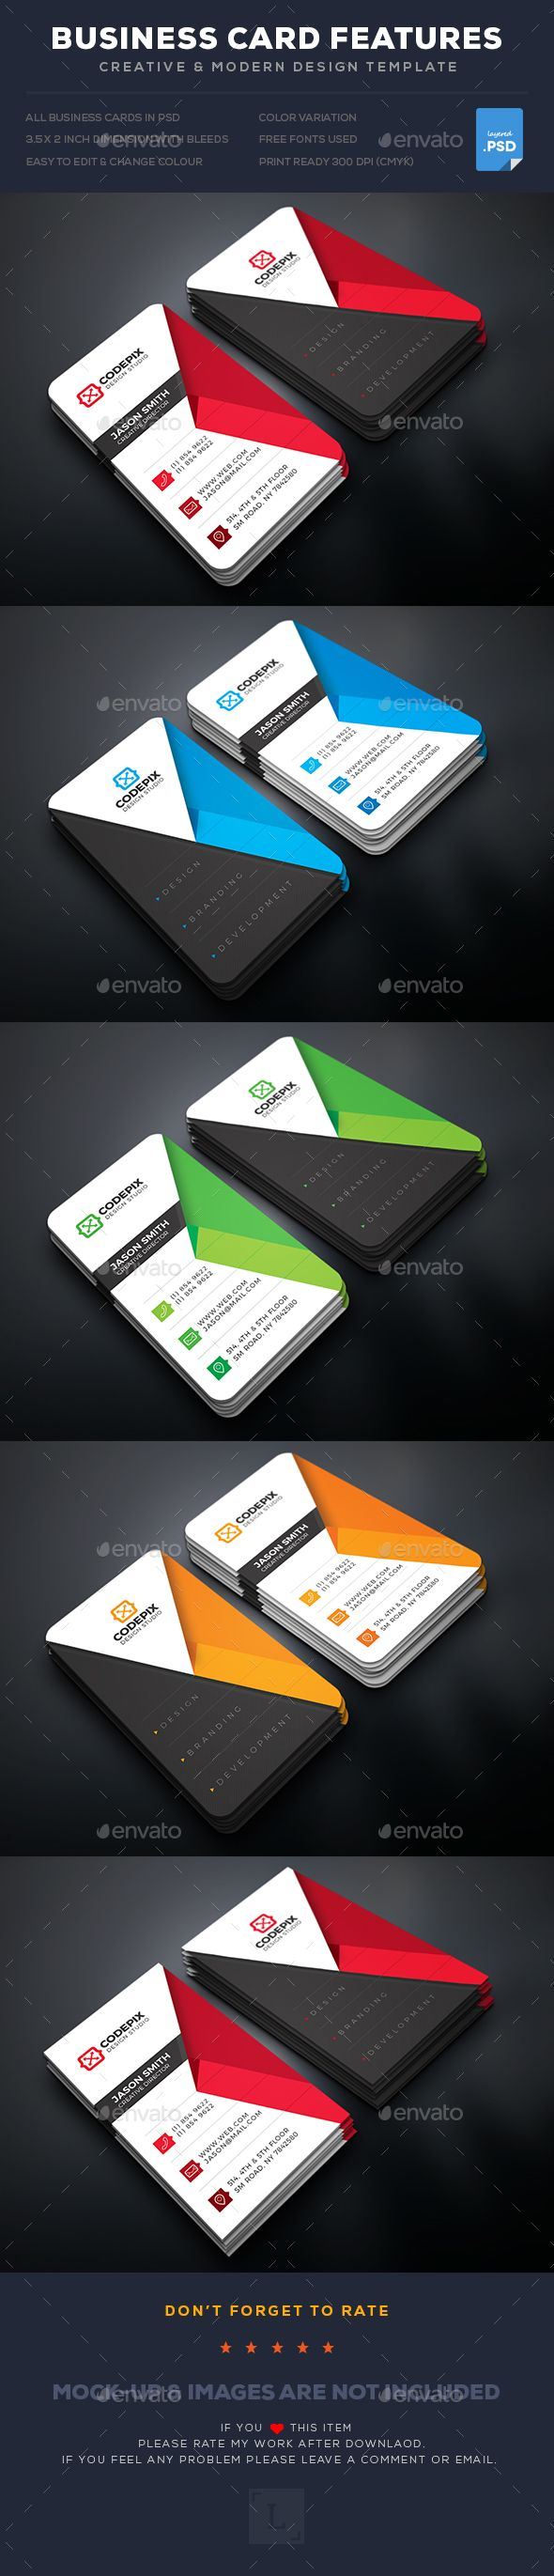 Best 25+ Visiting card printing ideas on Pinterest | Visit cards ...